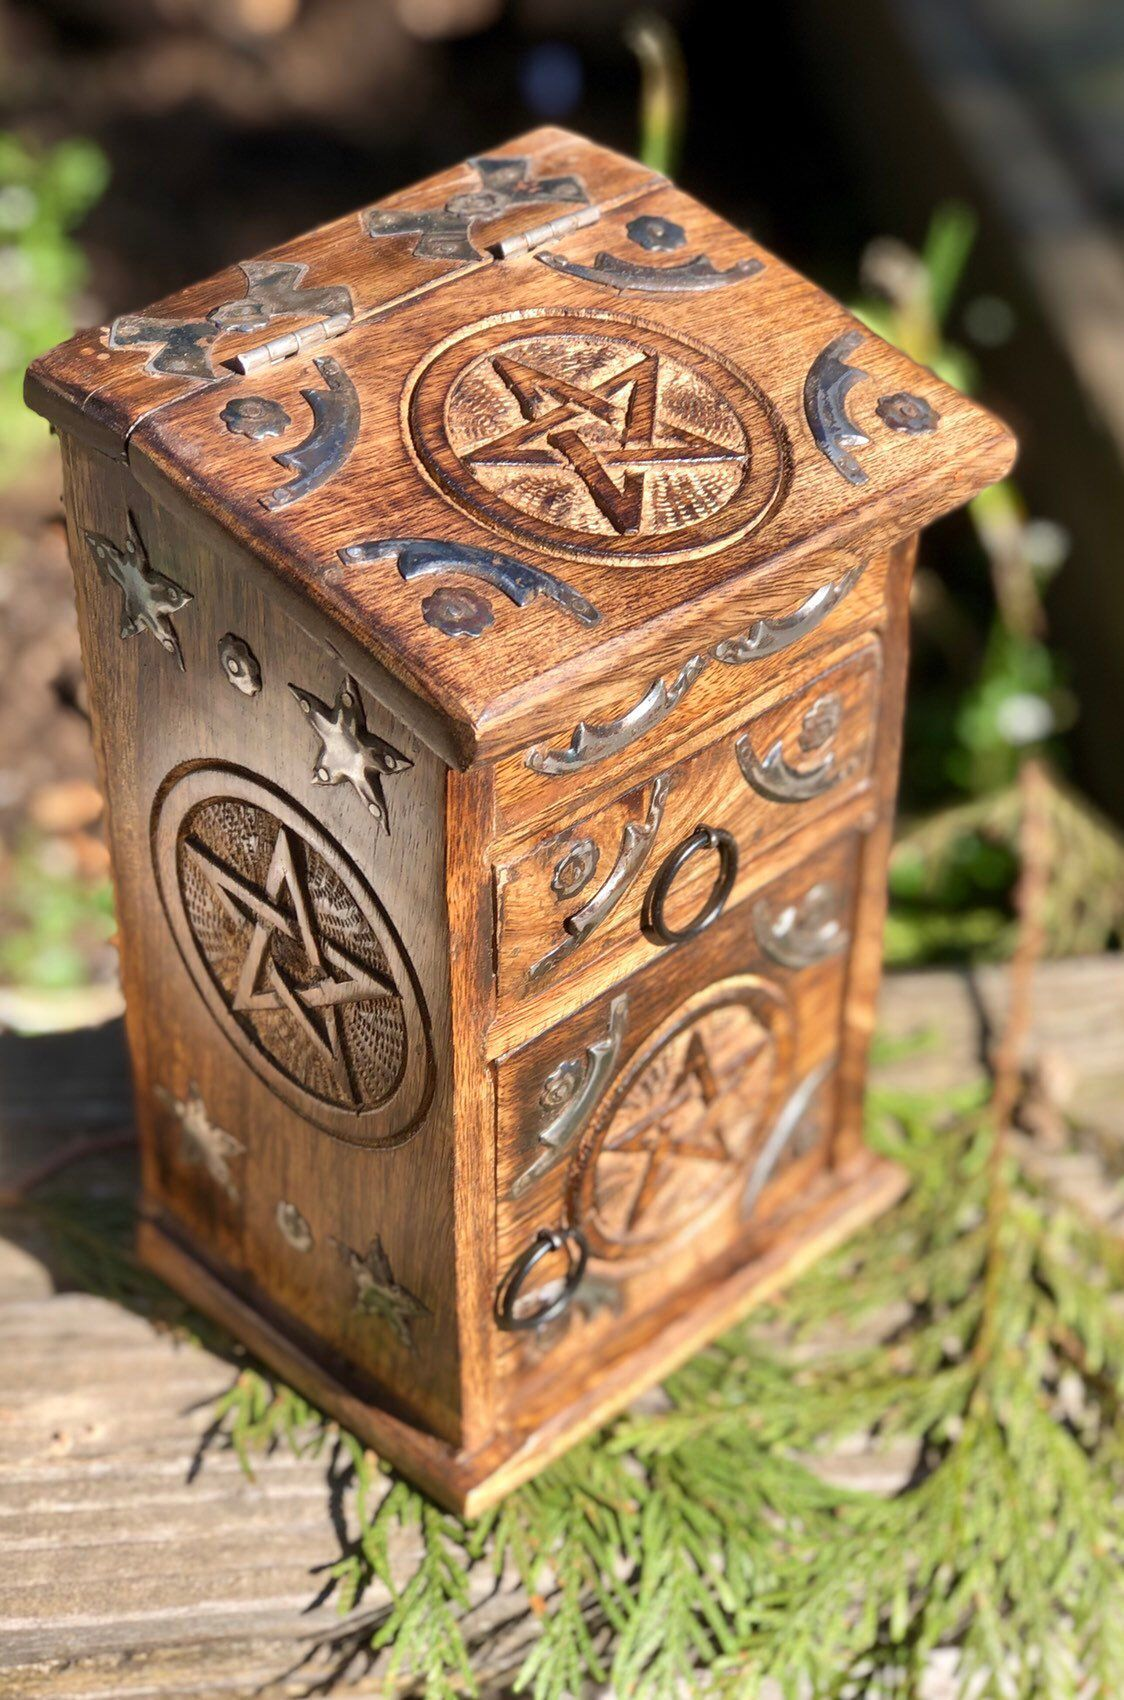 Pentagram Herb Cabinet Altar Kit Carved Wood Apothecary Witch Pagan Cabinet, Wiccan Decor #wiccandecor